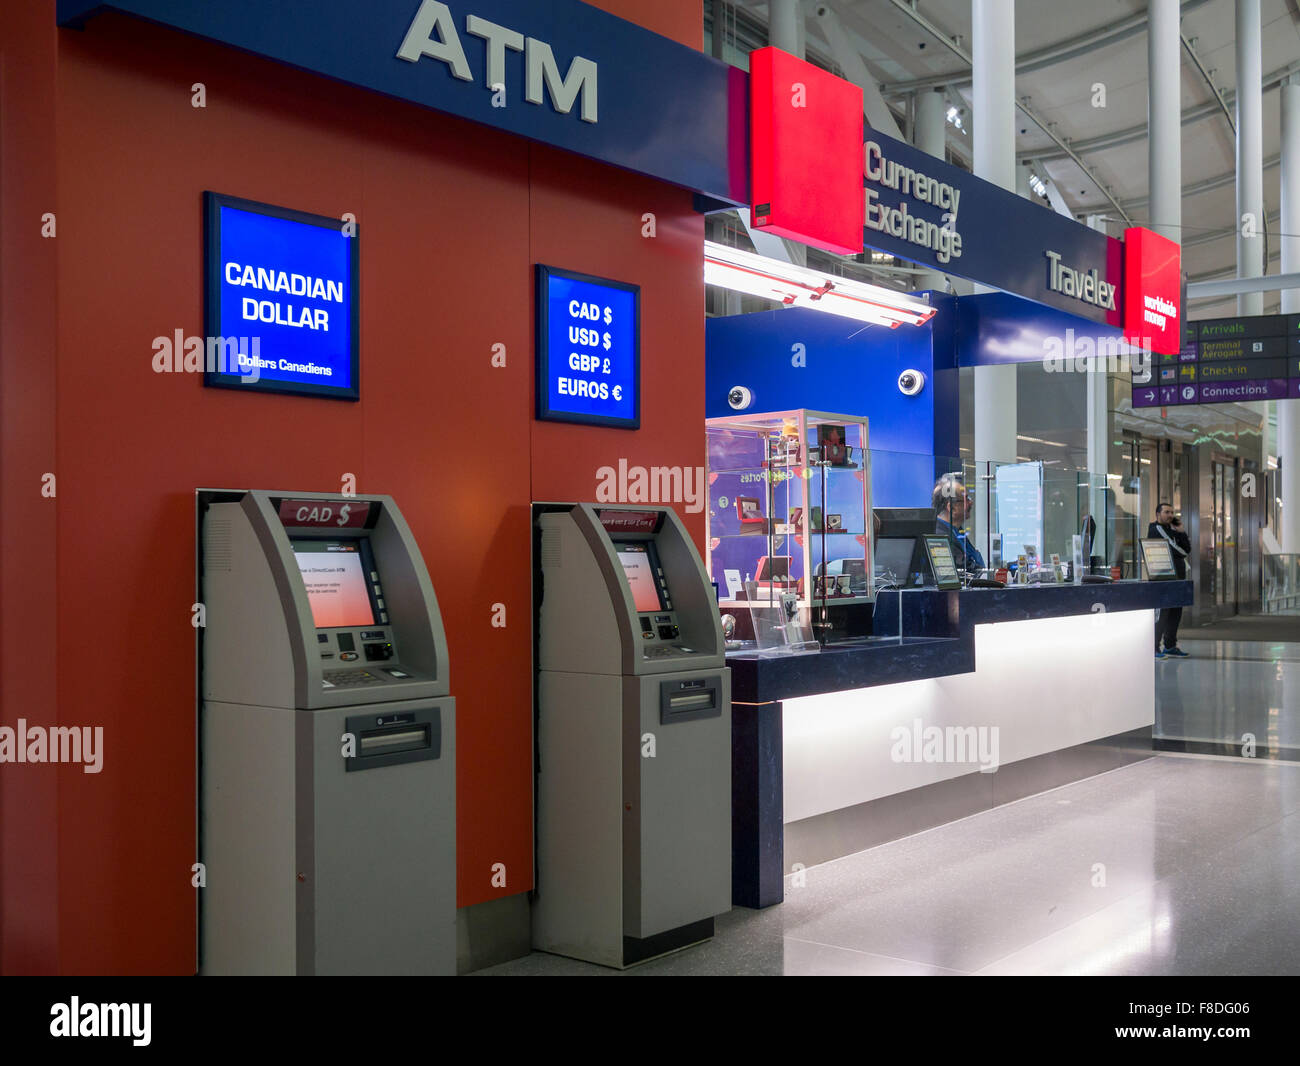 airport atm stockfotos airport atm bilder alamy. Black Bedroom Furniture Sets. Home Design Ideas